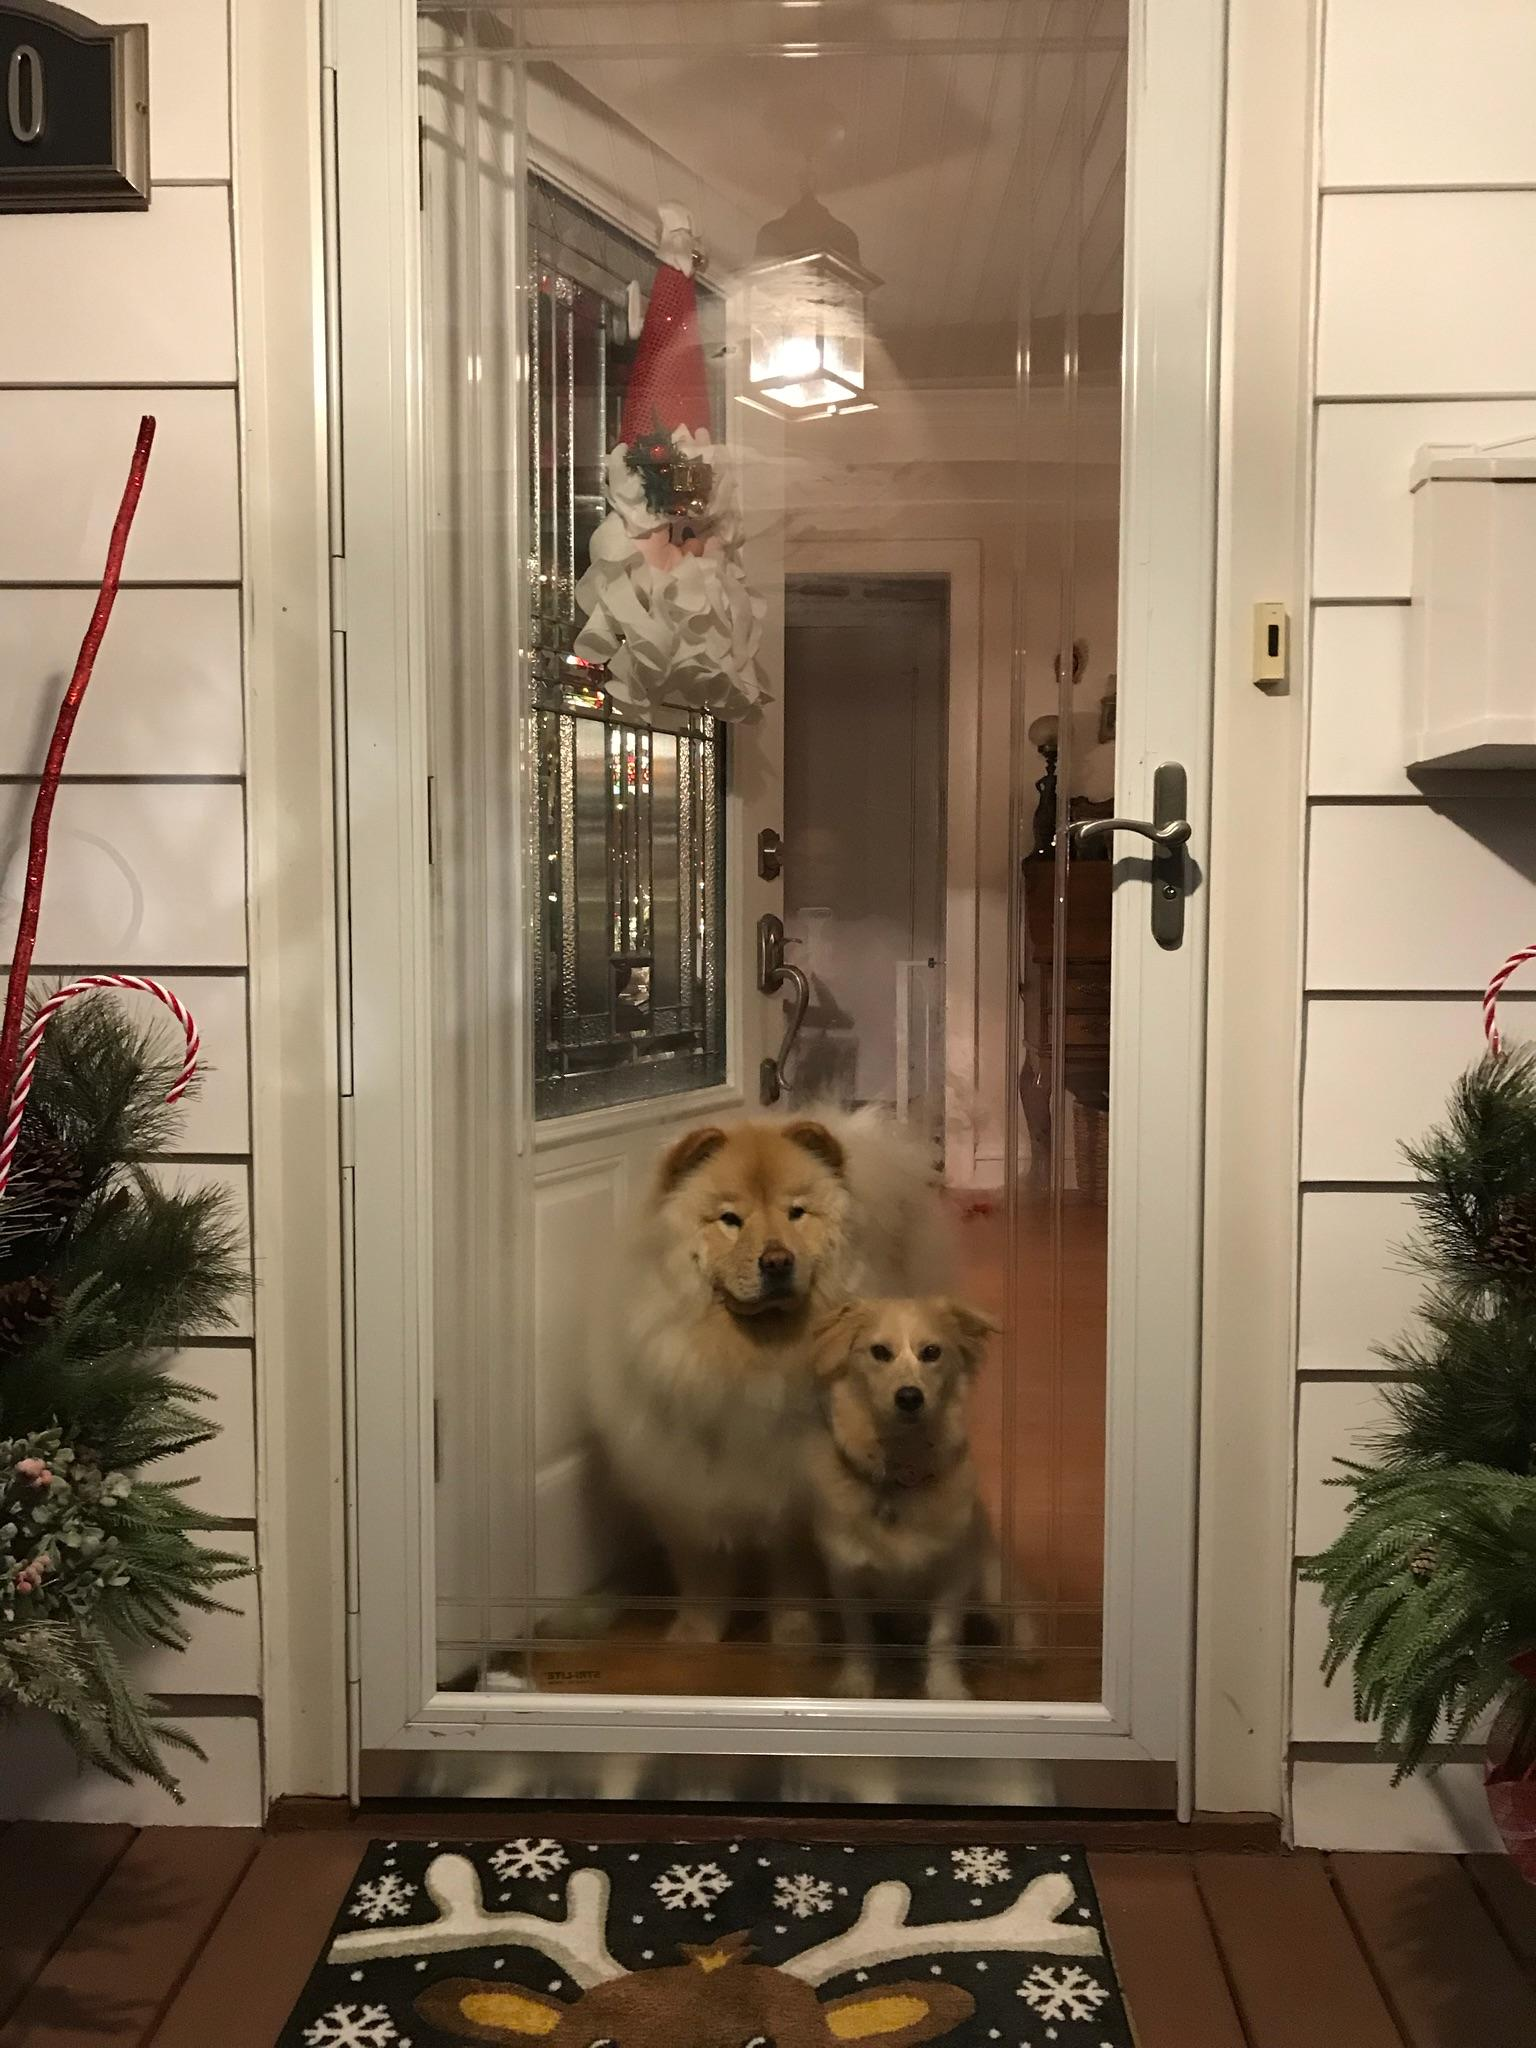 Two light brown dogs looking out through a glass front door